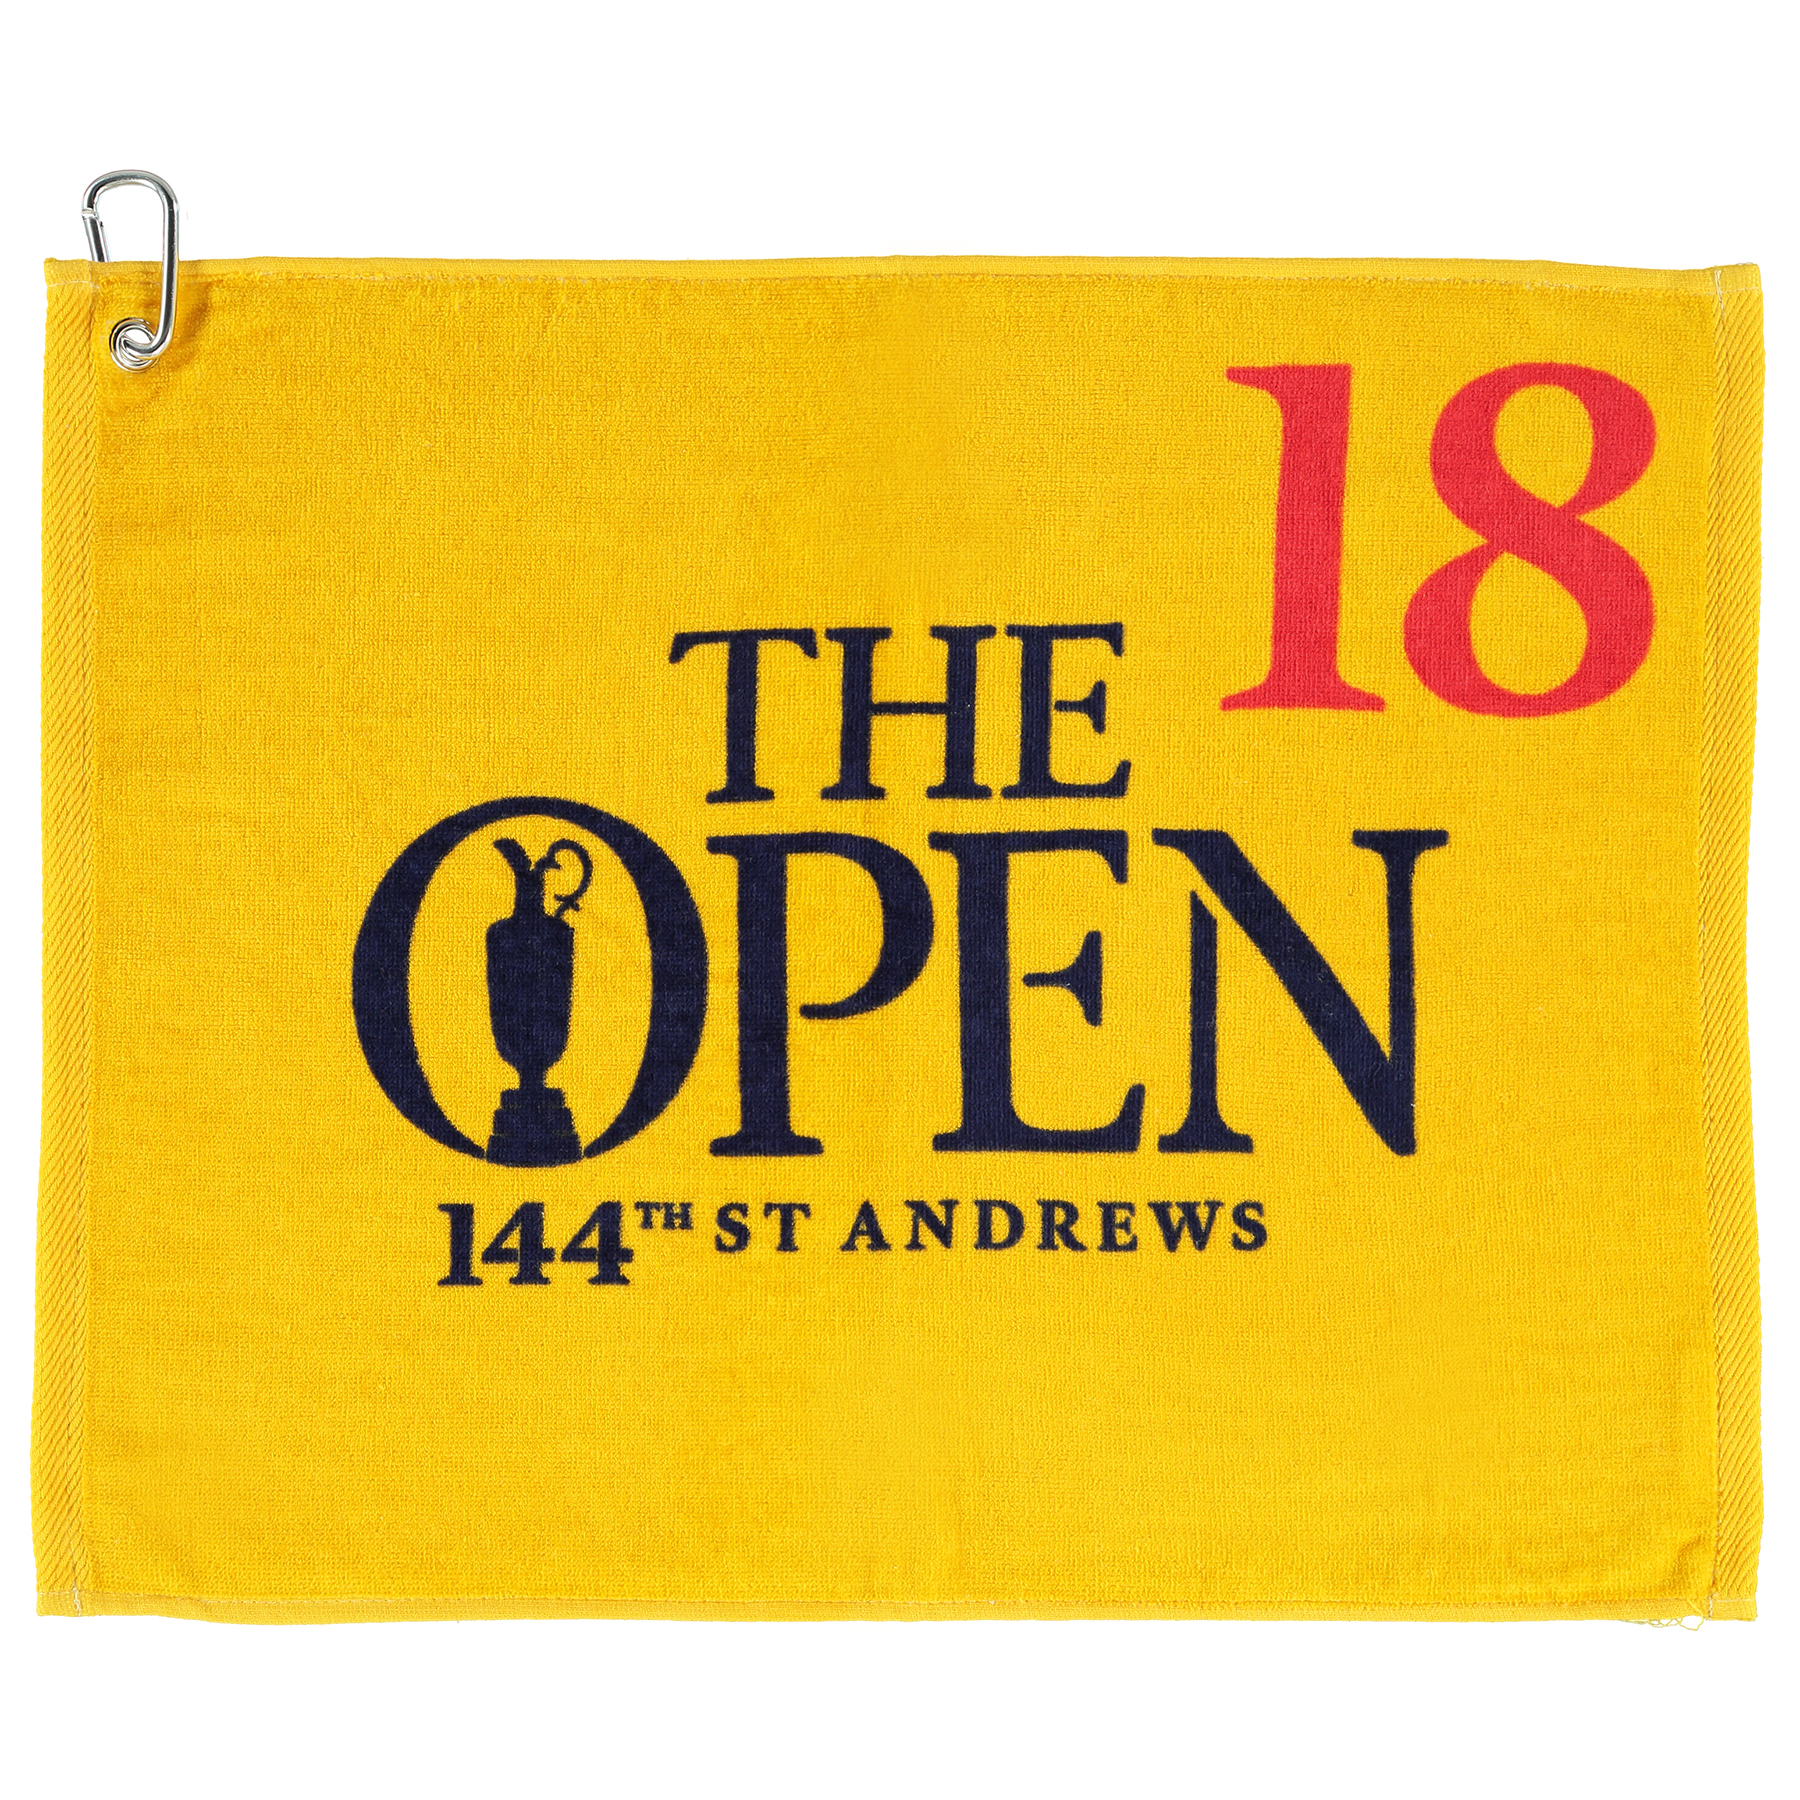 The Open 144th St Andrews Printed Towel - Yellow